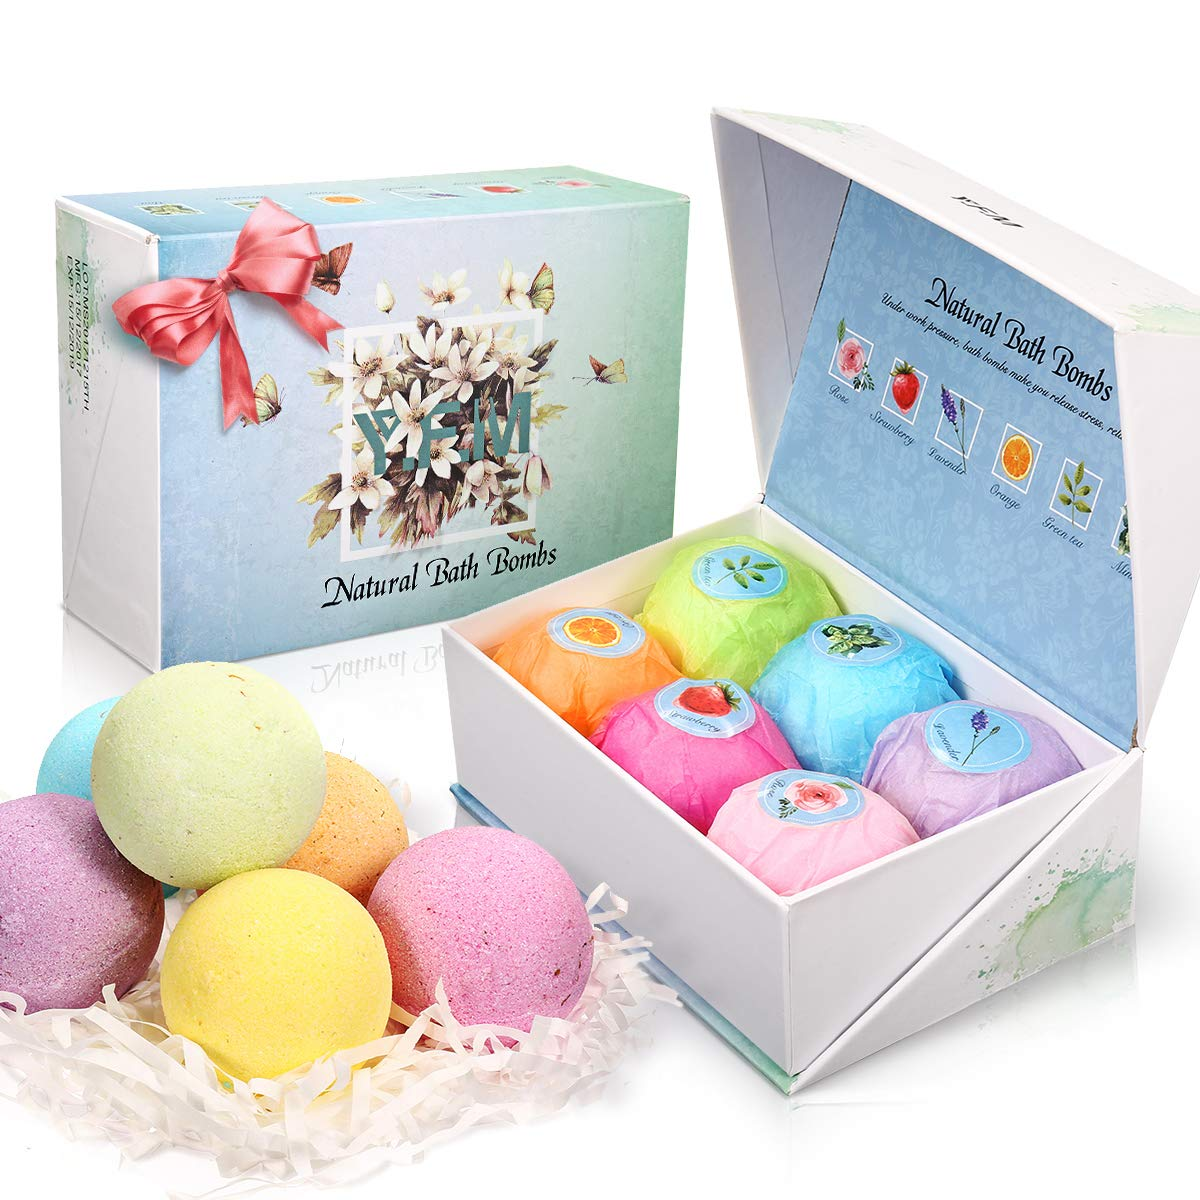 Bath Bomb Gift Set for Thanksgiving, New Formula Y.F.M 6 Pcs Handmade Spa Fizzing Bath Bombs with Gift Pack for Moisturizing Dry Skin Relaxation, Great Gift for Relatives, Friends, Colleagues and Lover Y.F.M.